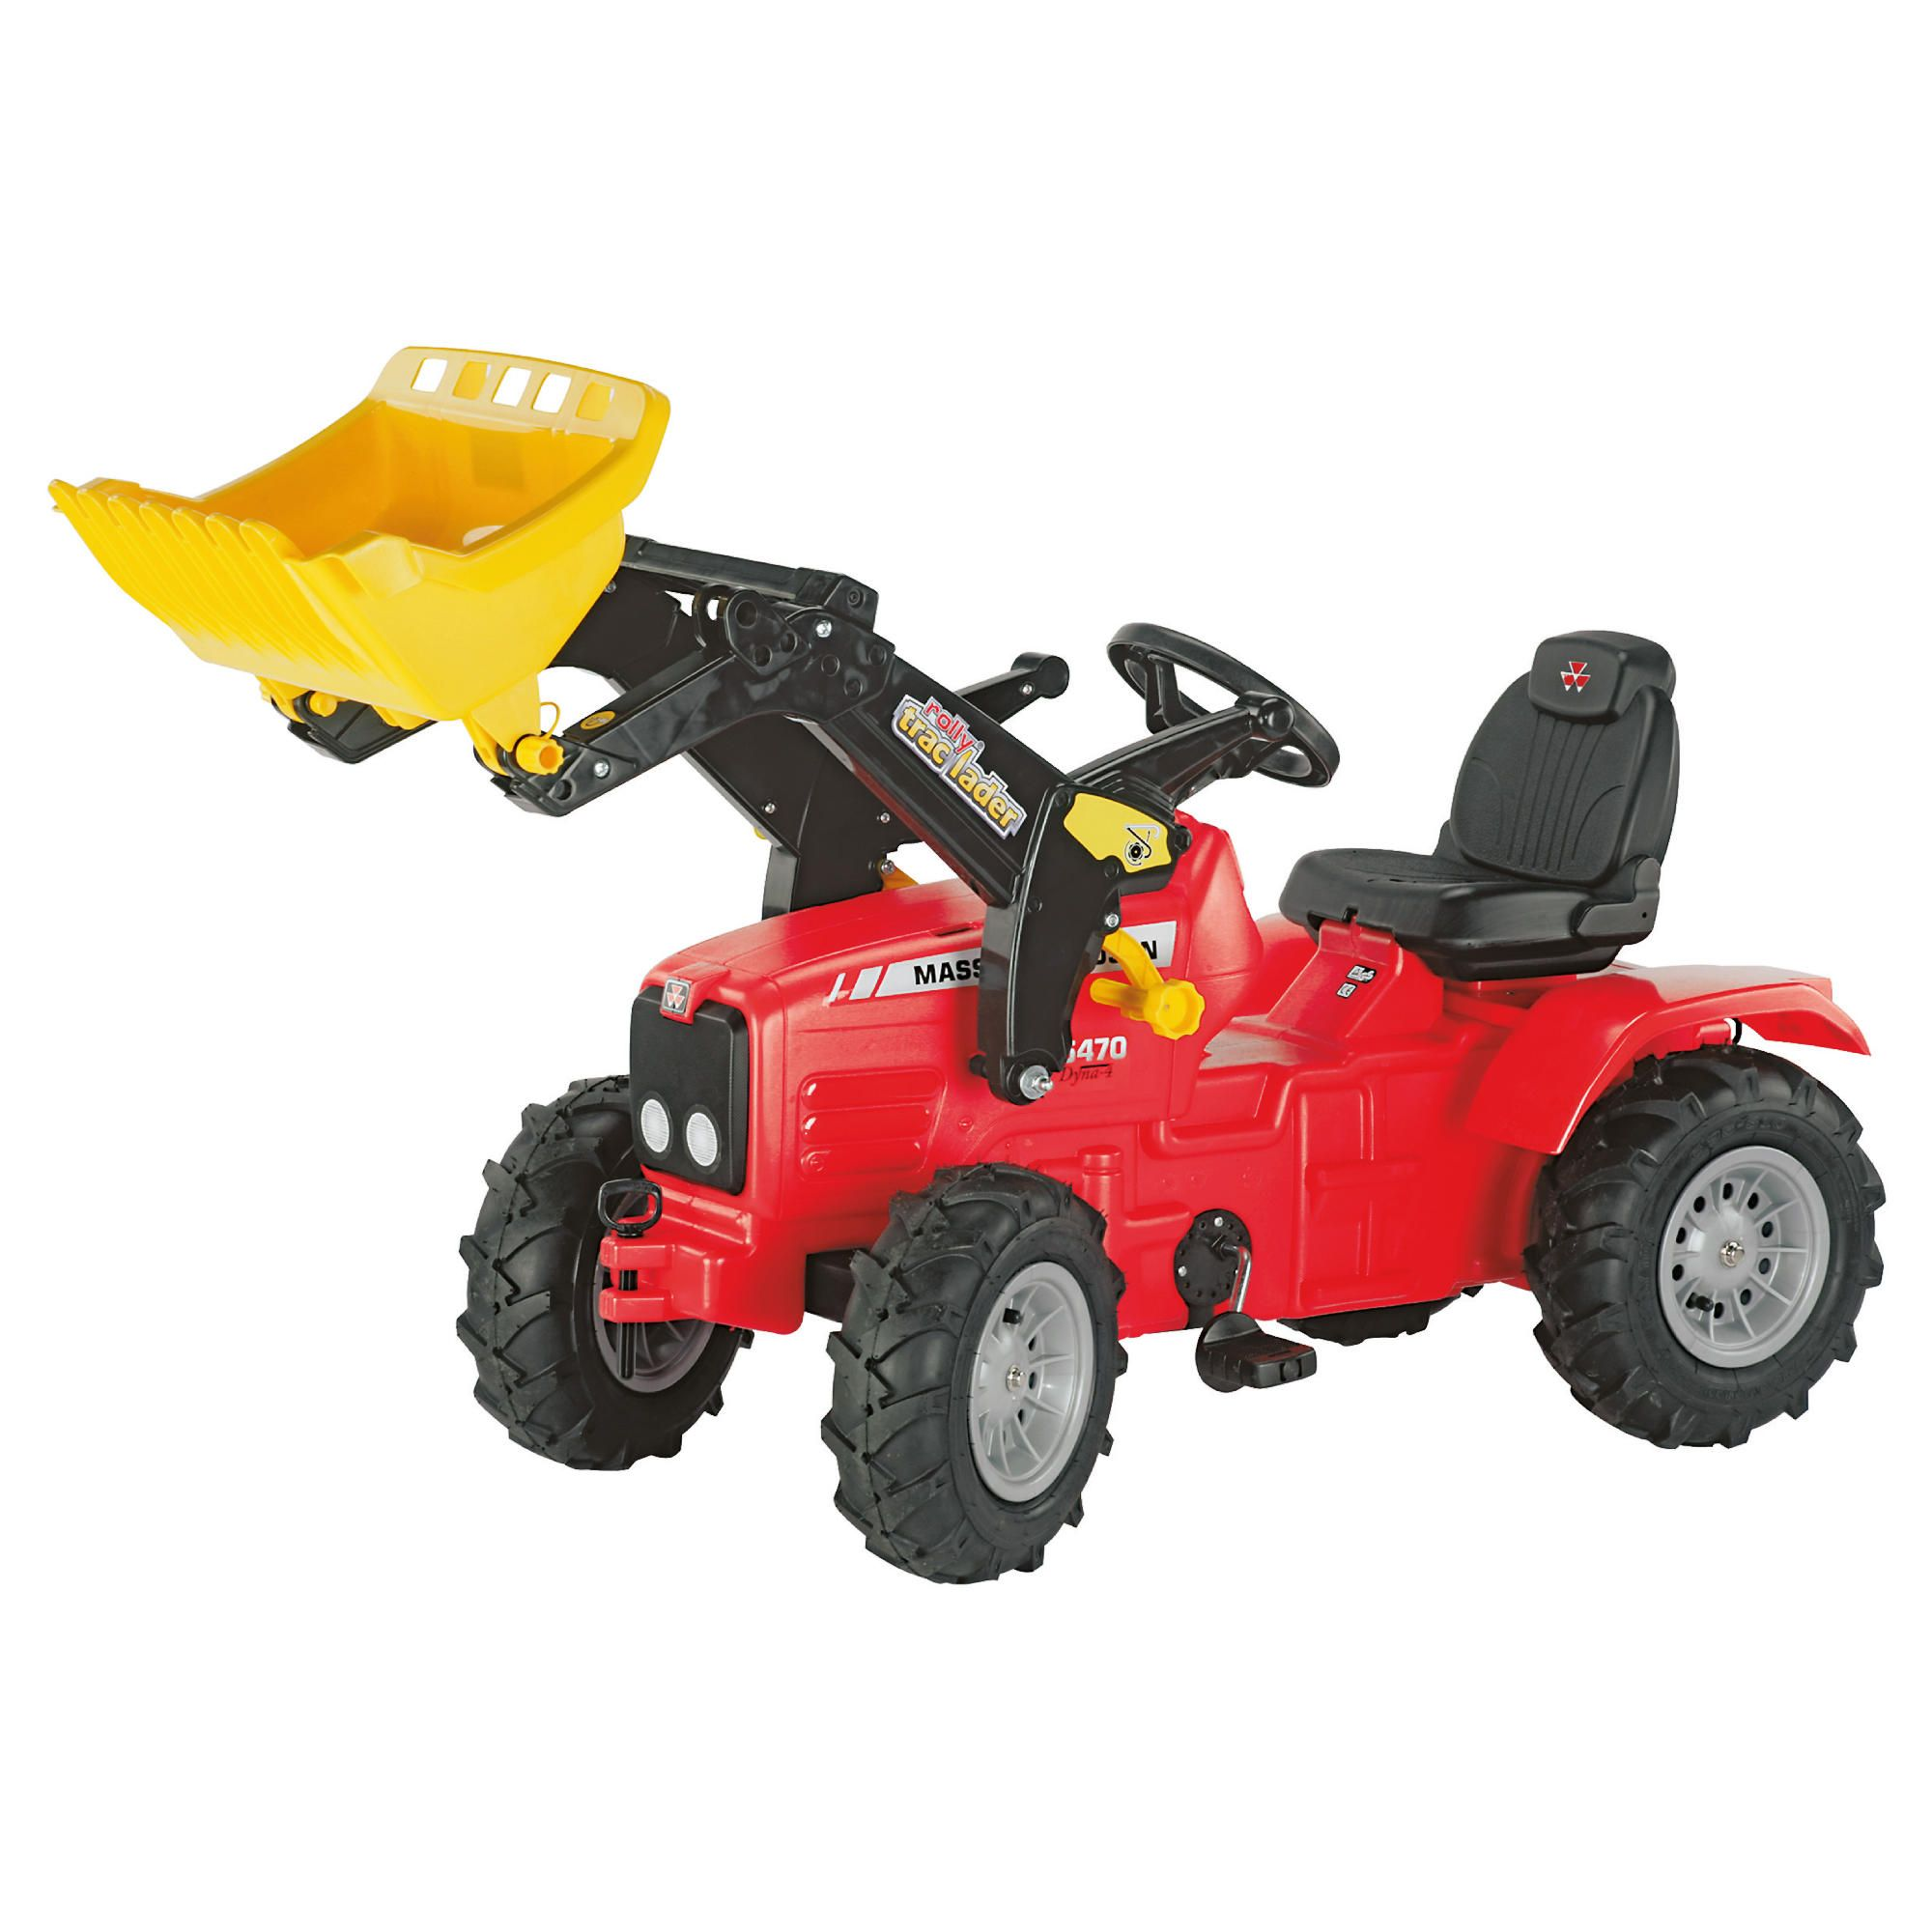 Massey Ferguson 5470 Ride-On Tractor With Pneumatic Tyres & Rolly Trac Loader at Tesco Direct